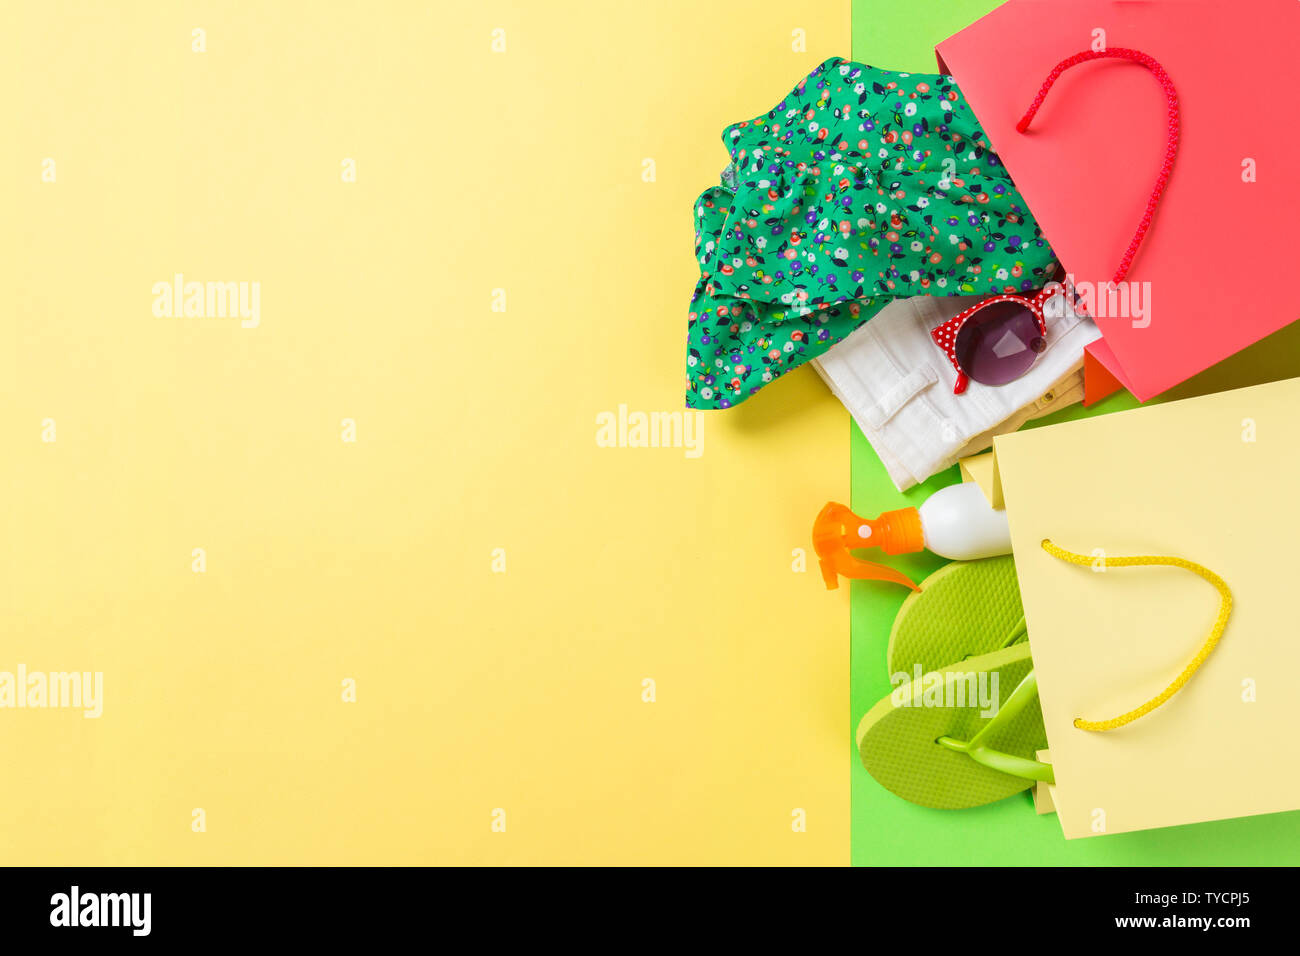 Summer concept of colourful shopping bags full of clothes. Gift bags with T-shirt, denim shorts, flip flops and bottle of sunscreen. Summer wishlist c - Stock Image